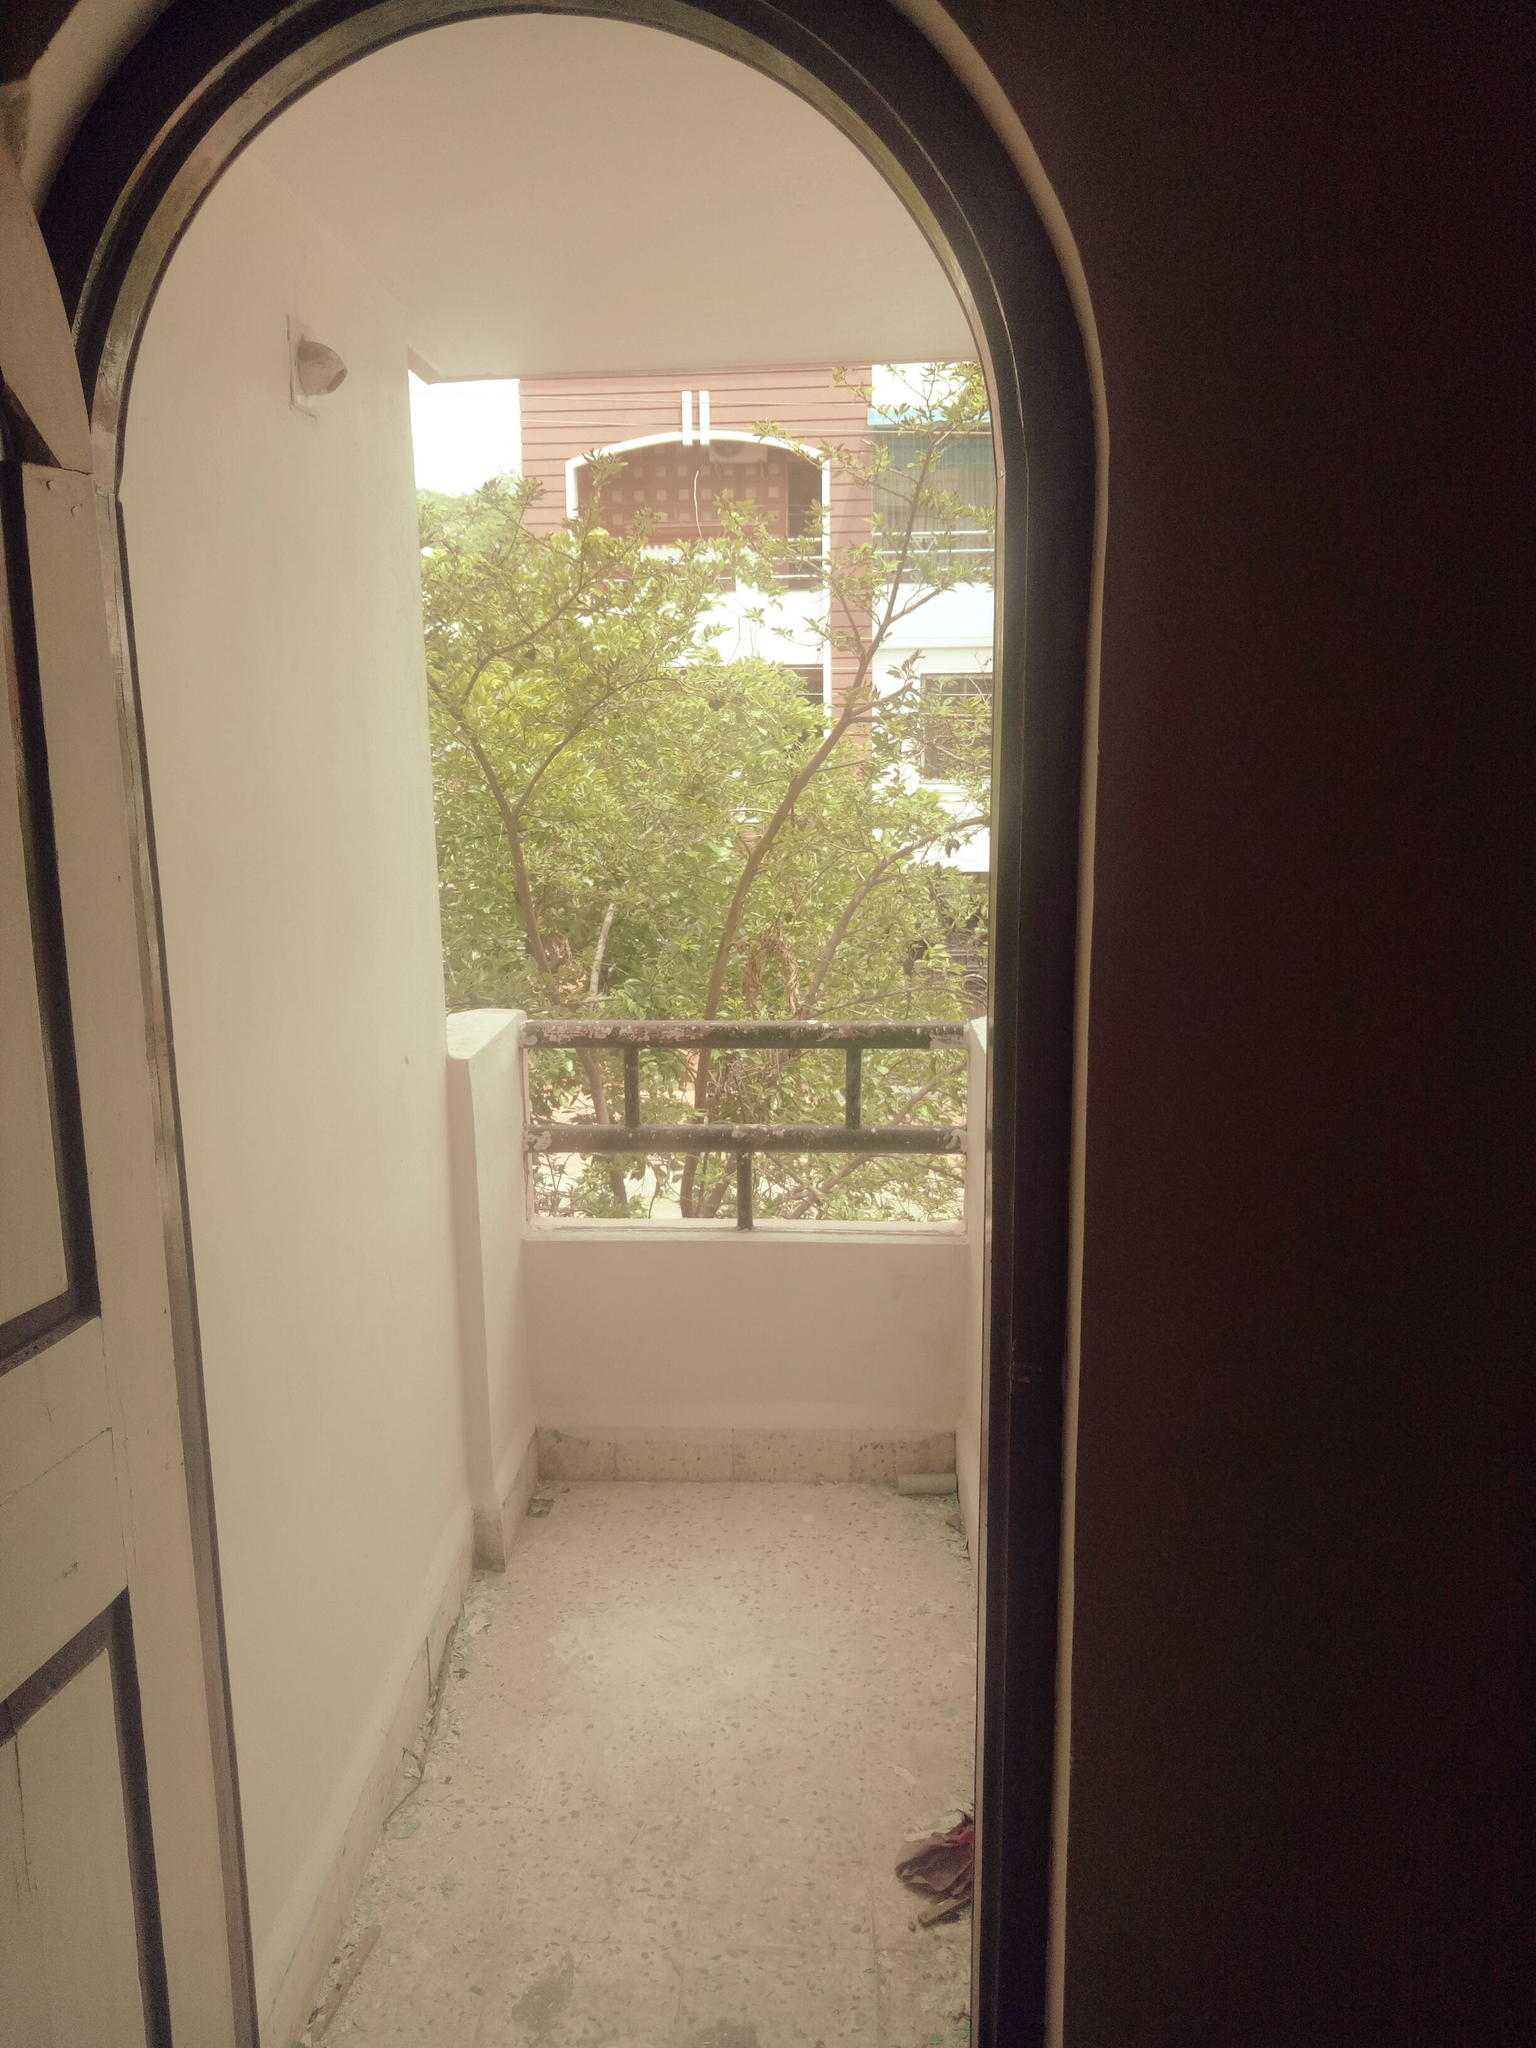 3bhk semifurnished with 3wardrobes for rent 25000 in shree nagar.